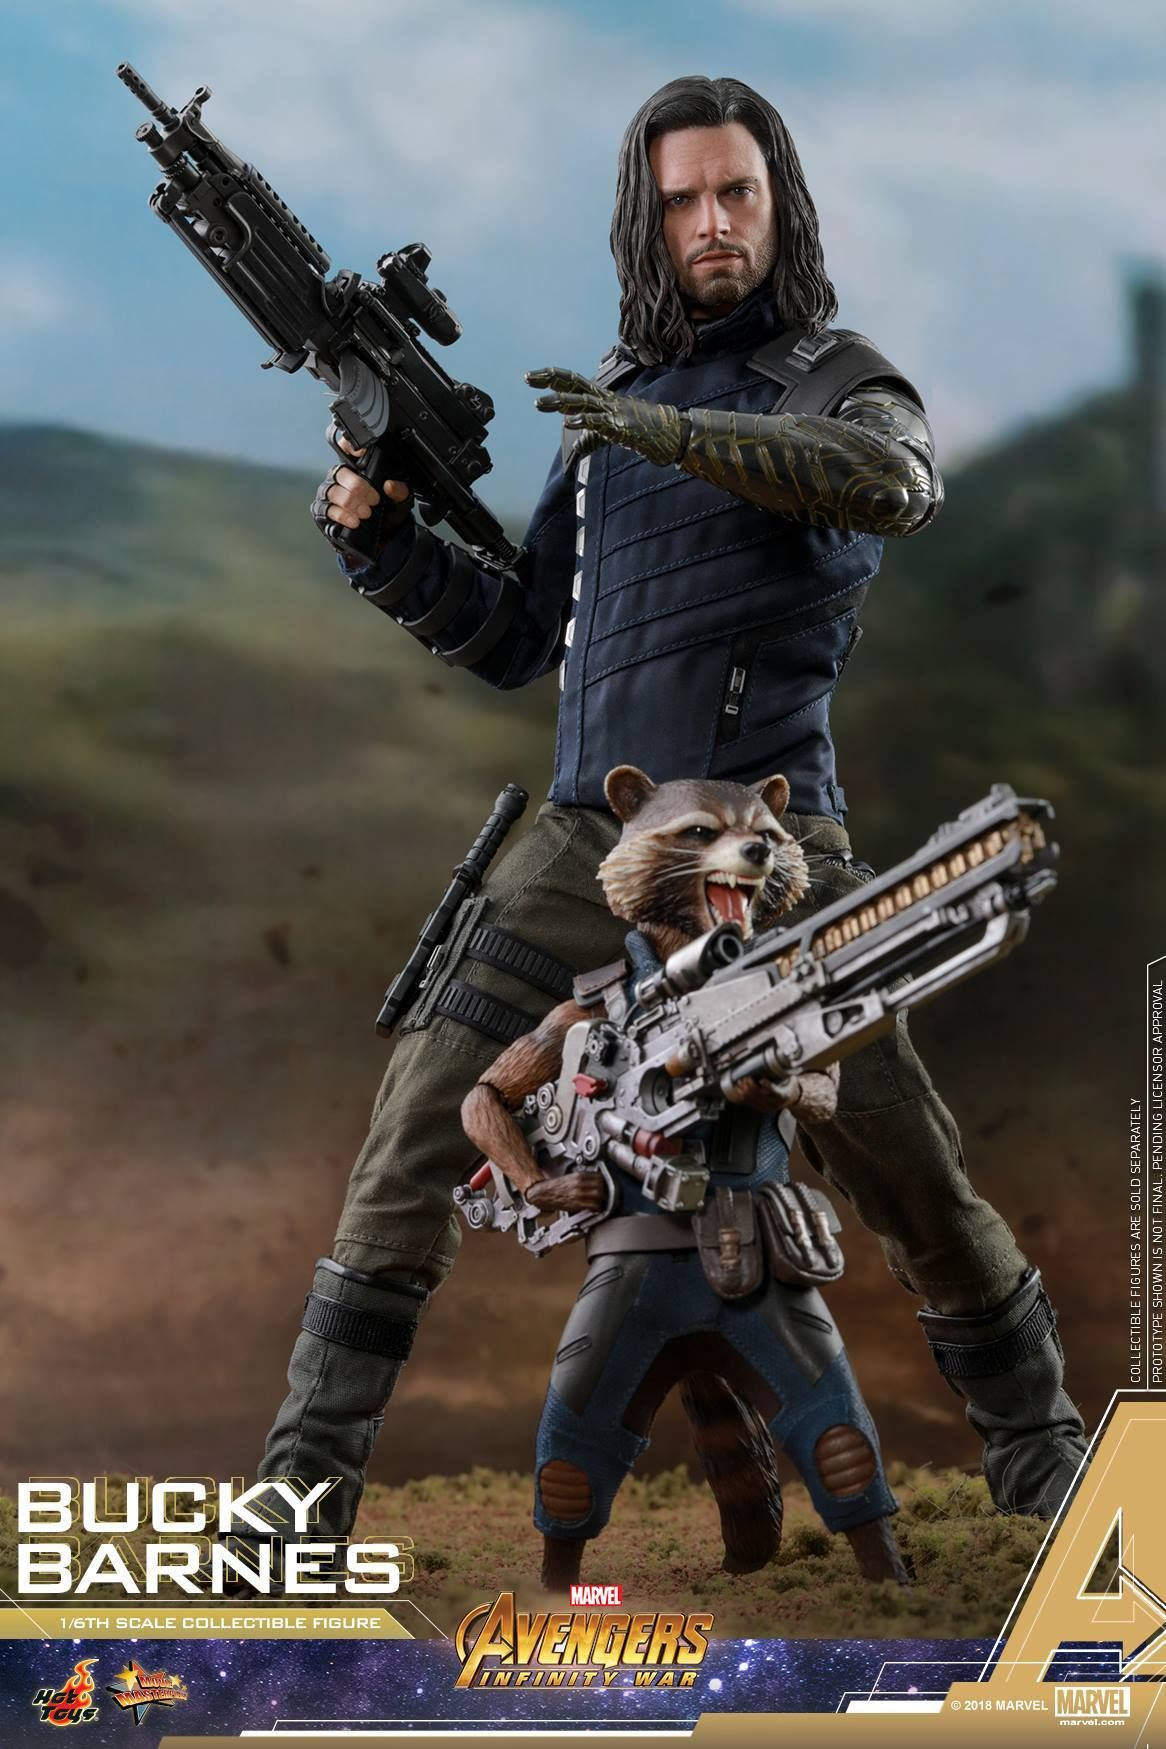 Avengers Infinity War Bucky Barnes Figure By Hot Toys With